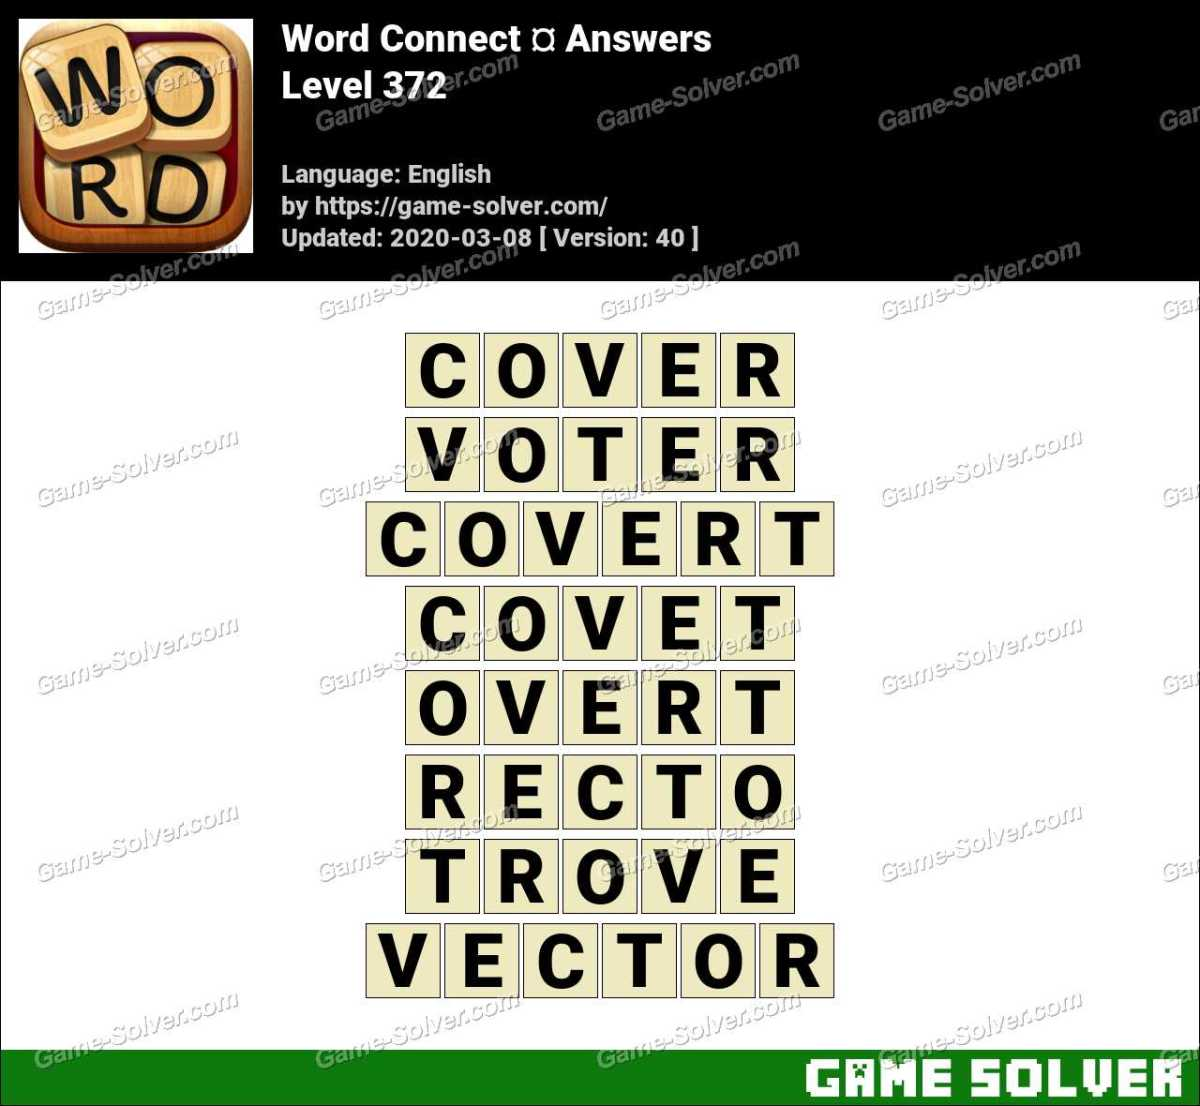 Word Connect Level 372 Answers